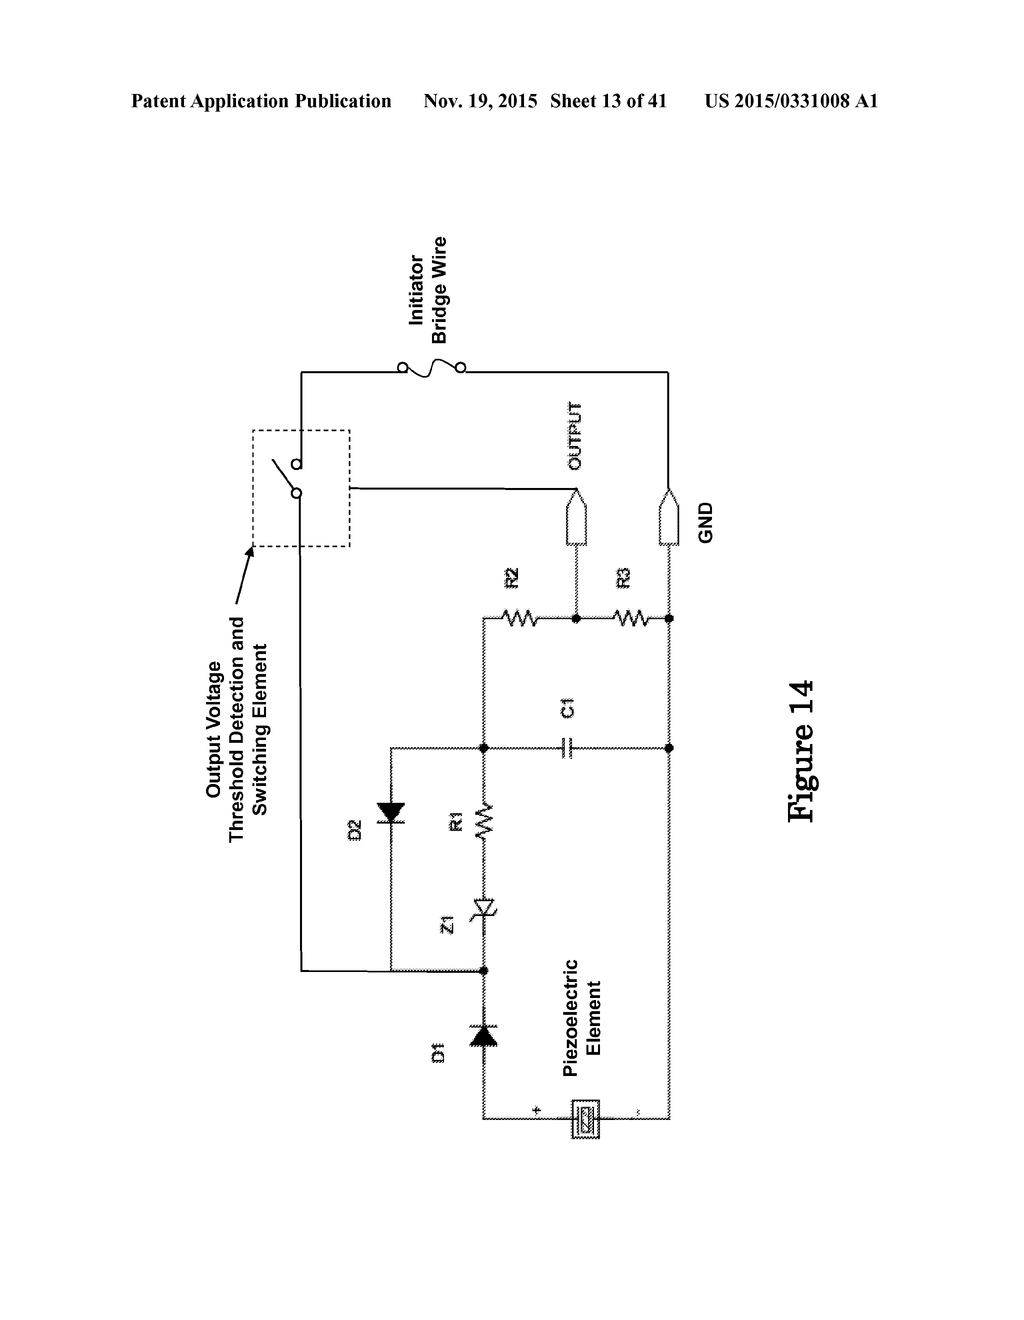 Piezoelectric Based Multiple Impact Sensors And Their Electronic Circuits Explained Circuitry Diagram Schematic Image 14